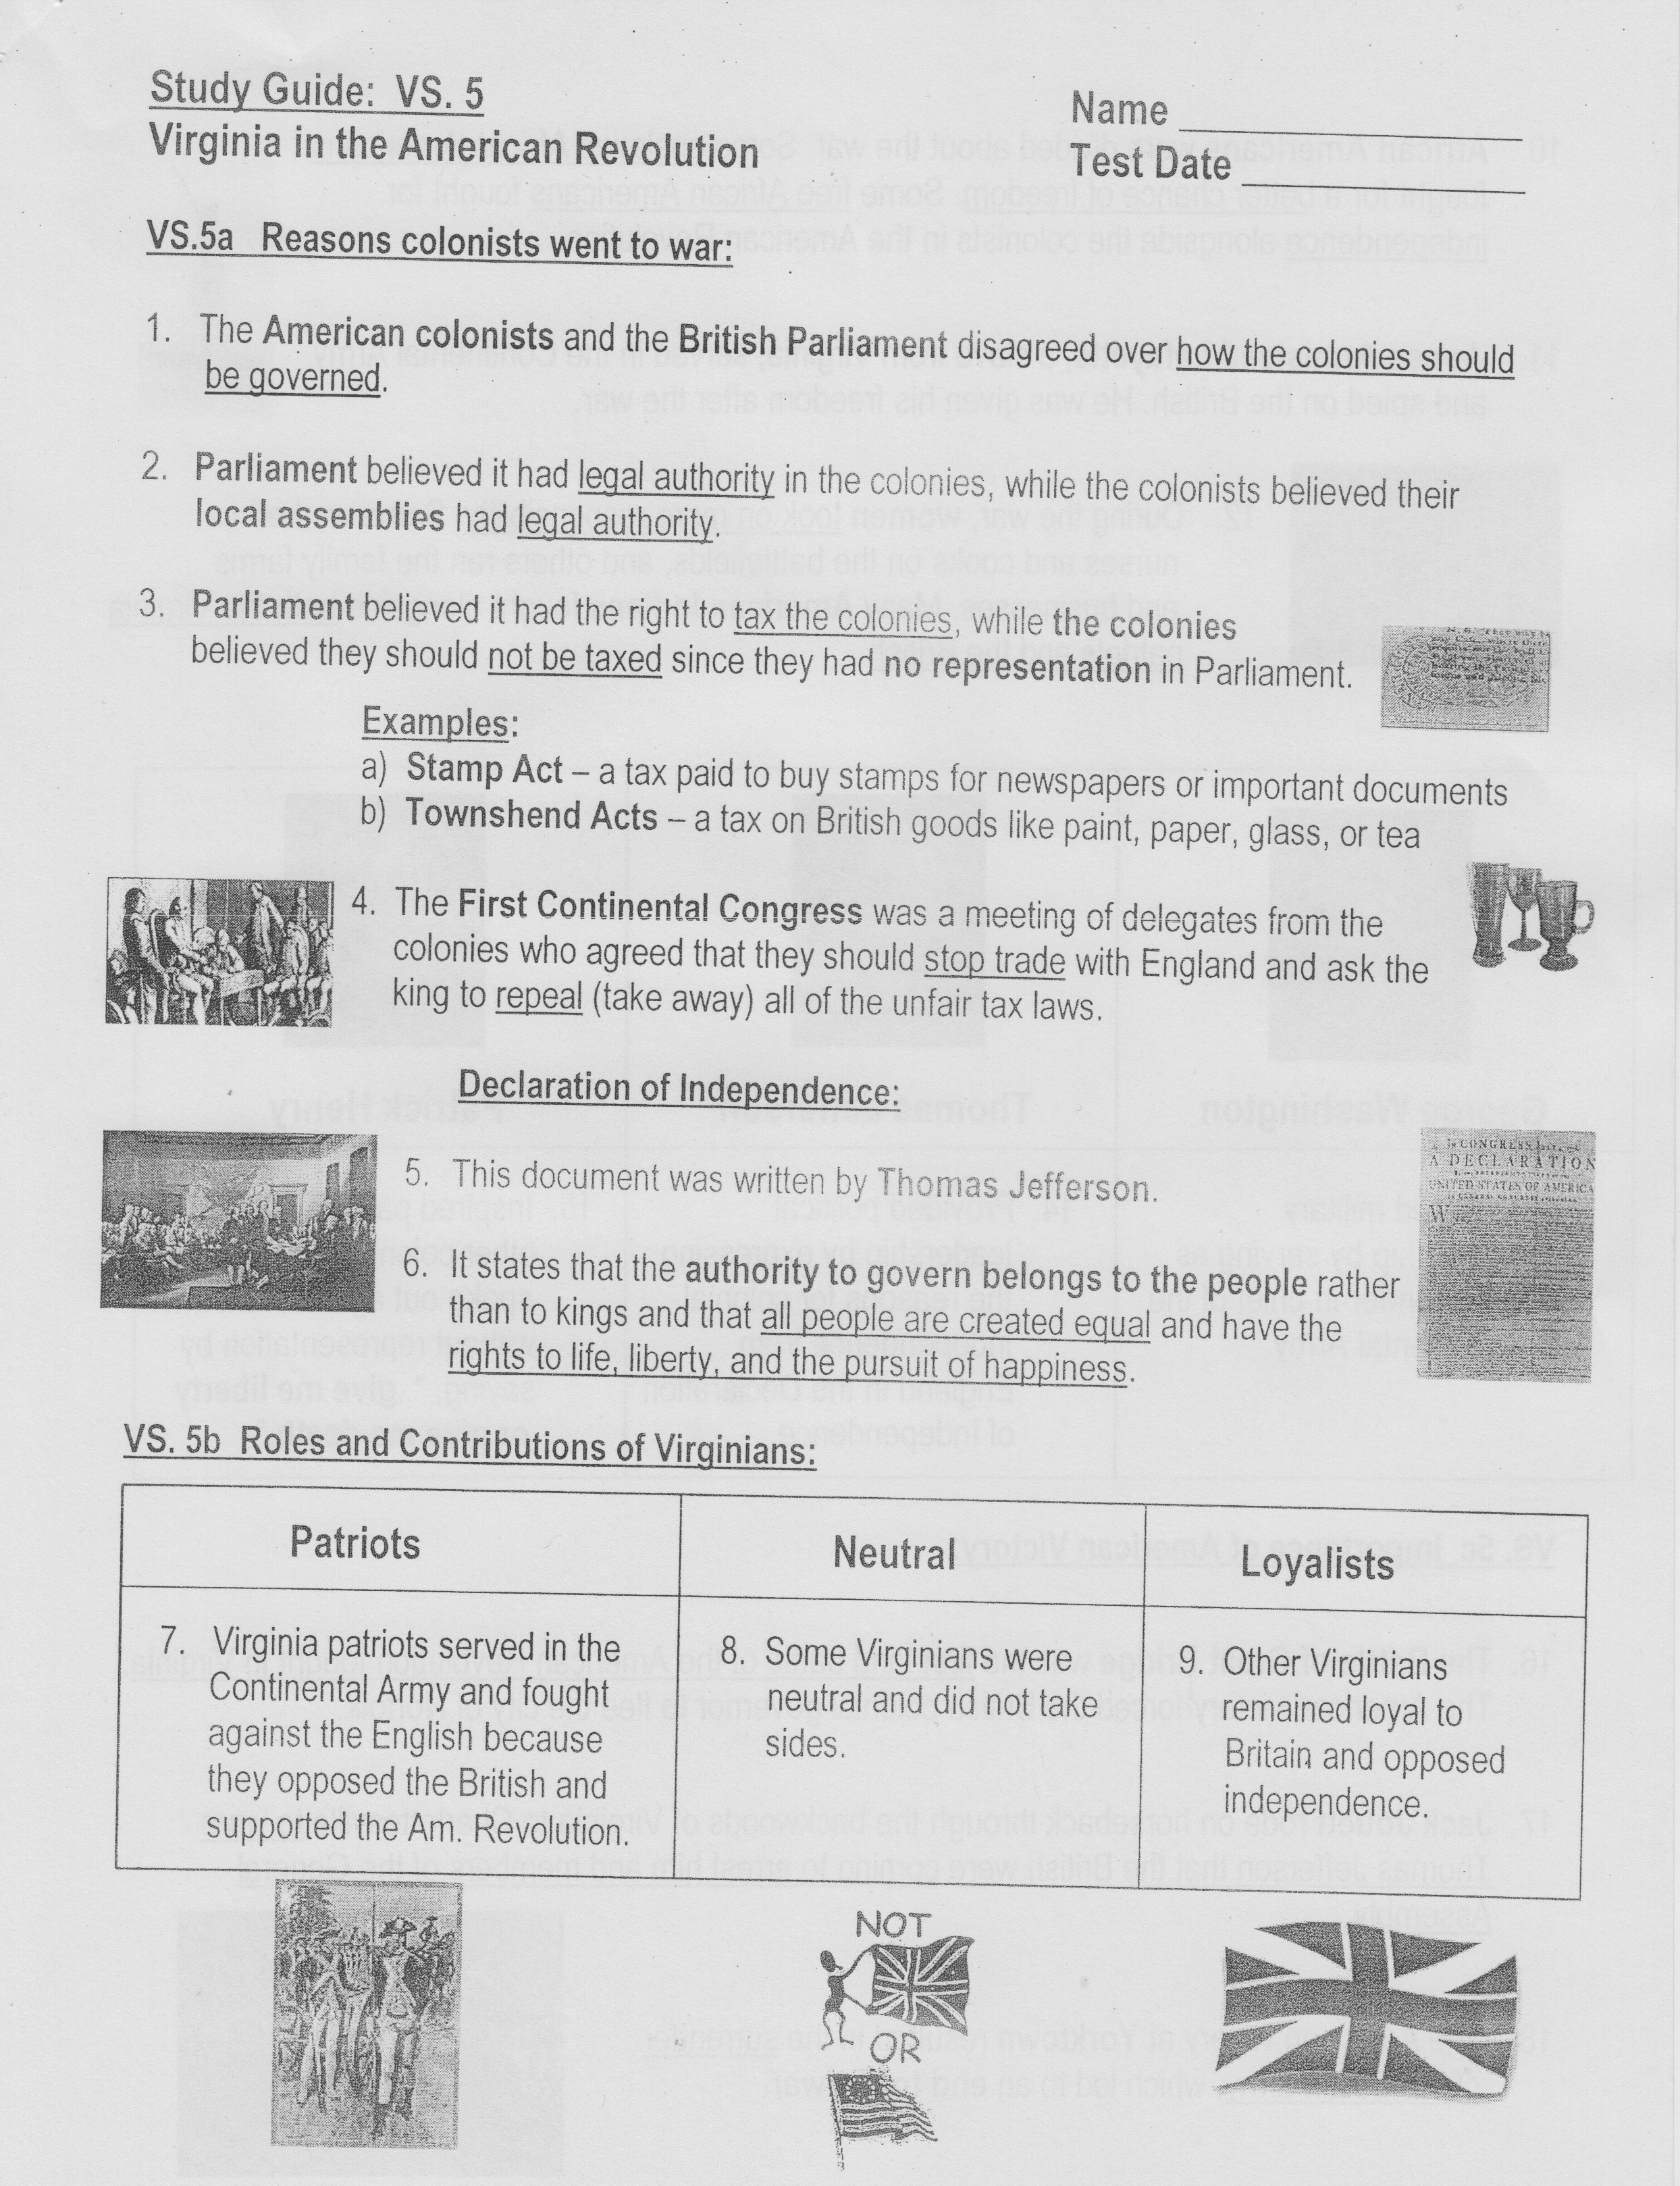 4Th Grade Homework  Va Studies Guides And Notes Or Life In The Colonies Worksheet Answers